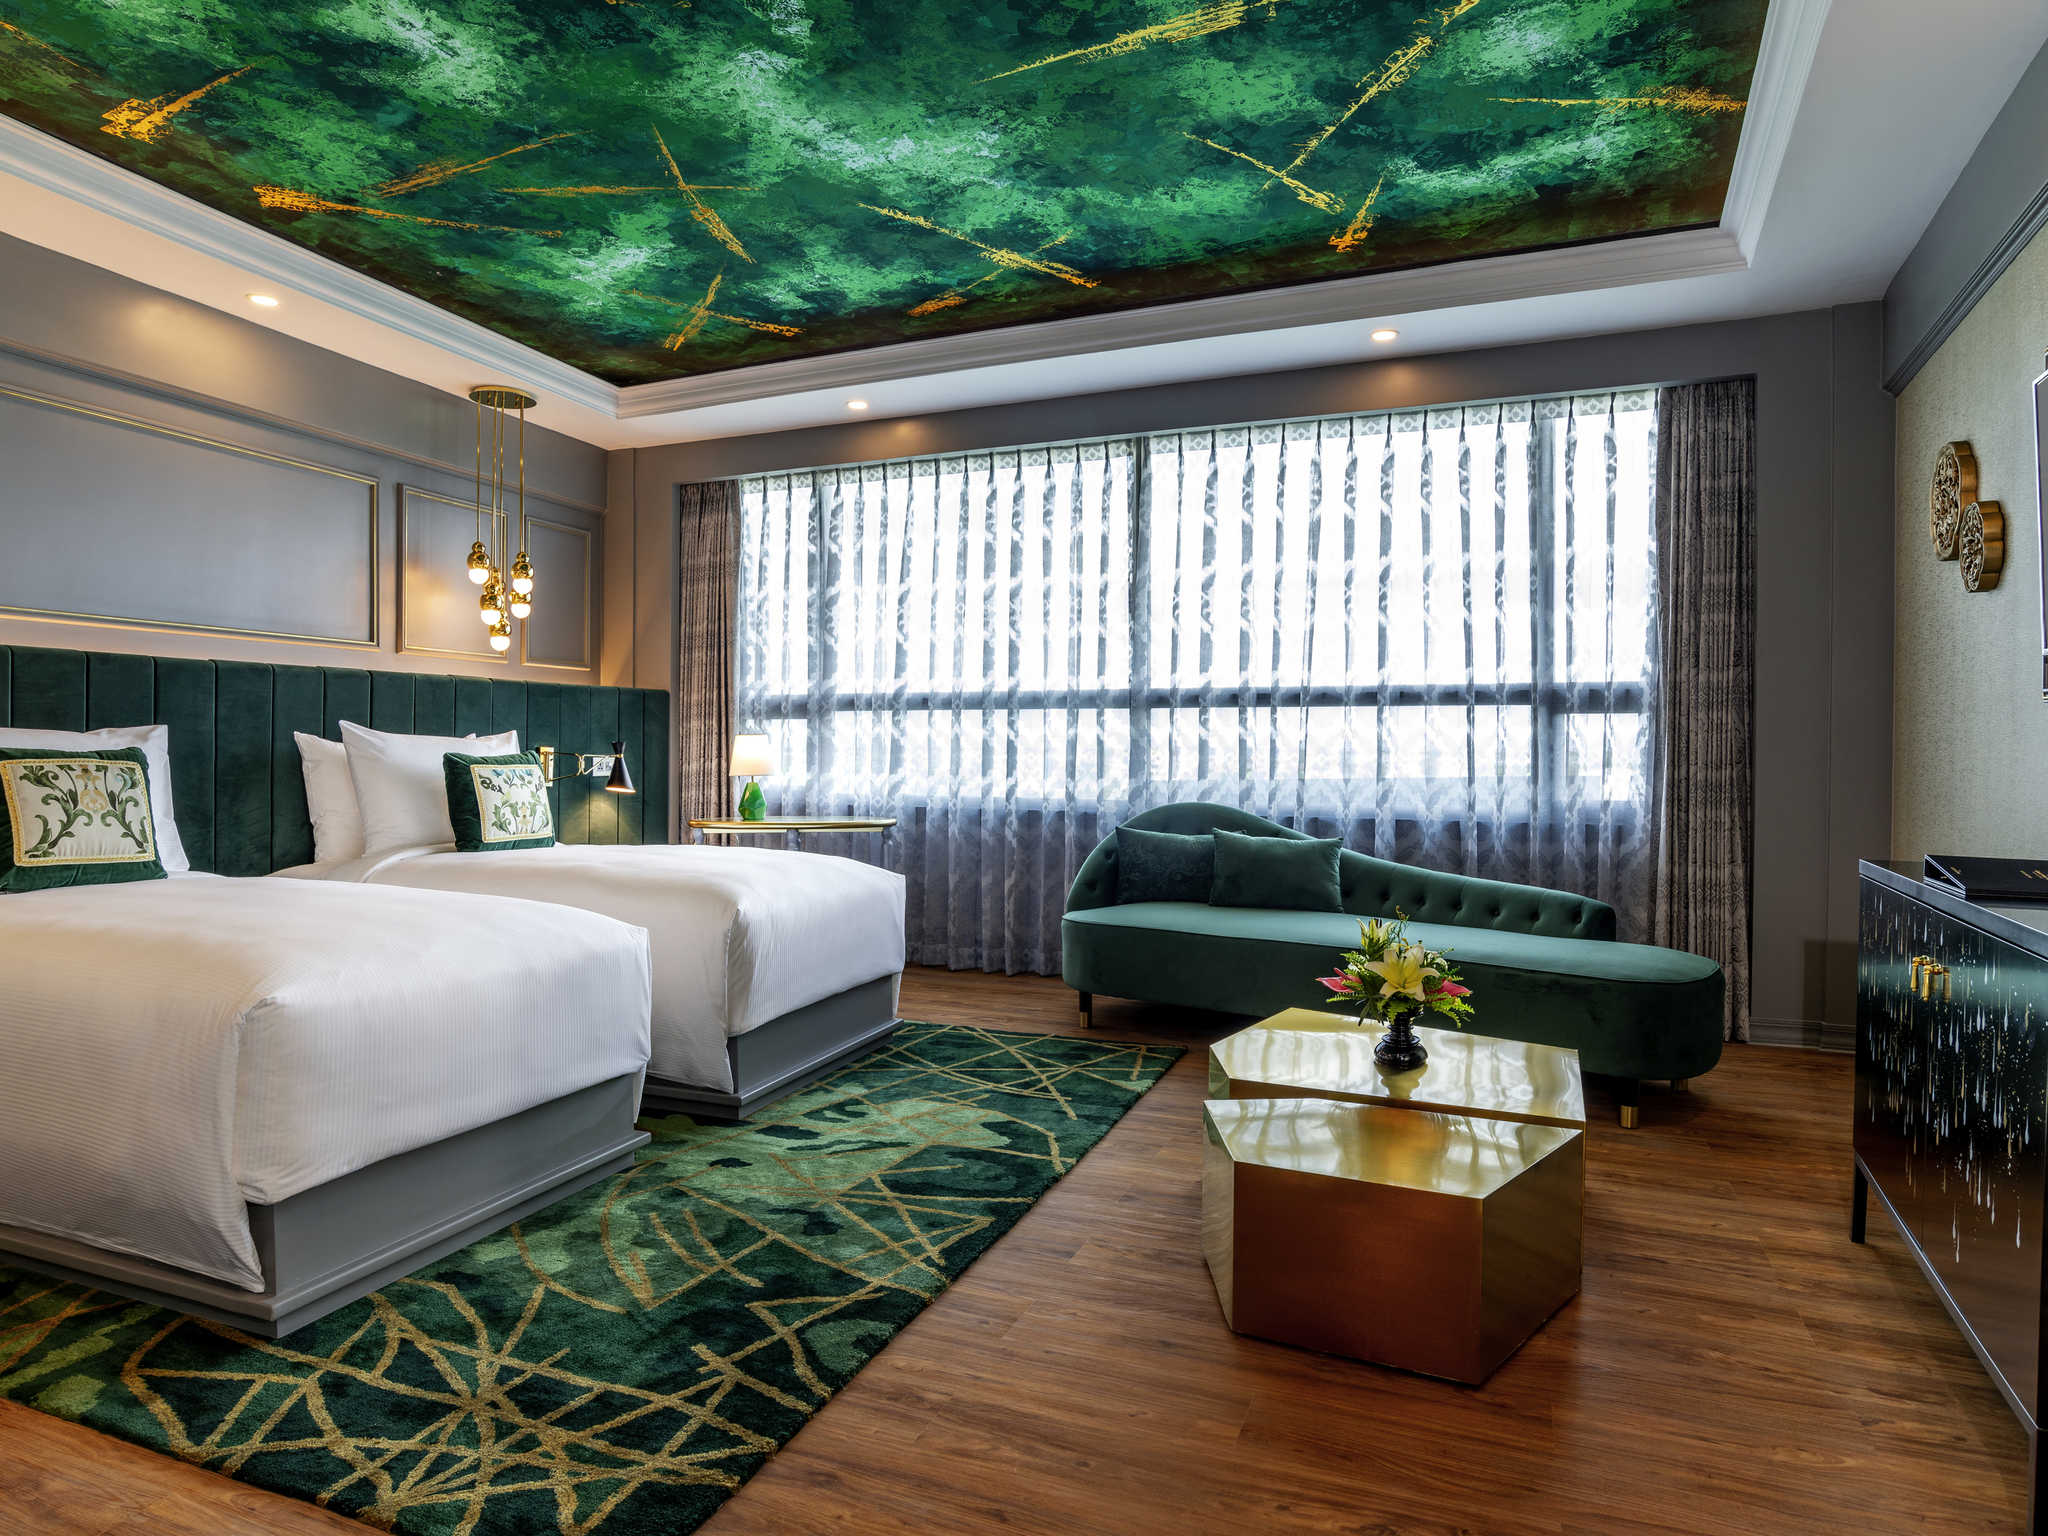 The Emerald Room at the Grand Mercure in Yangon